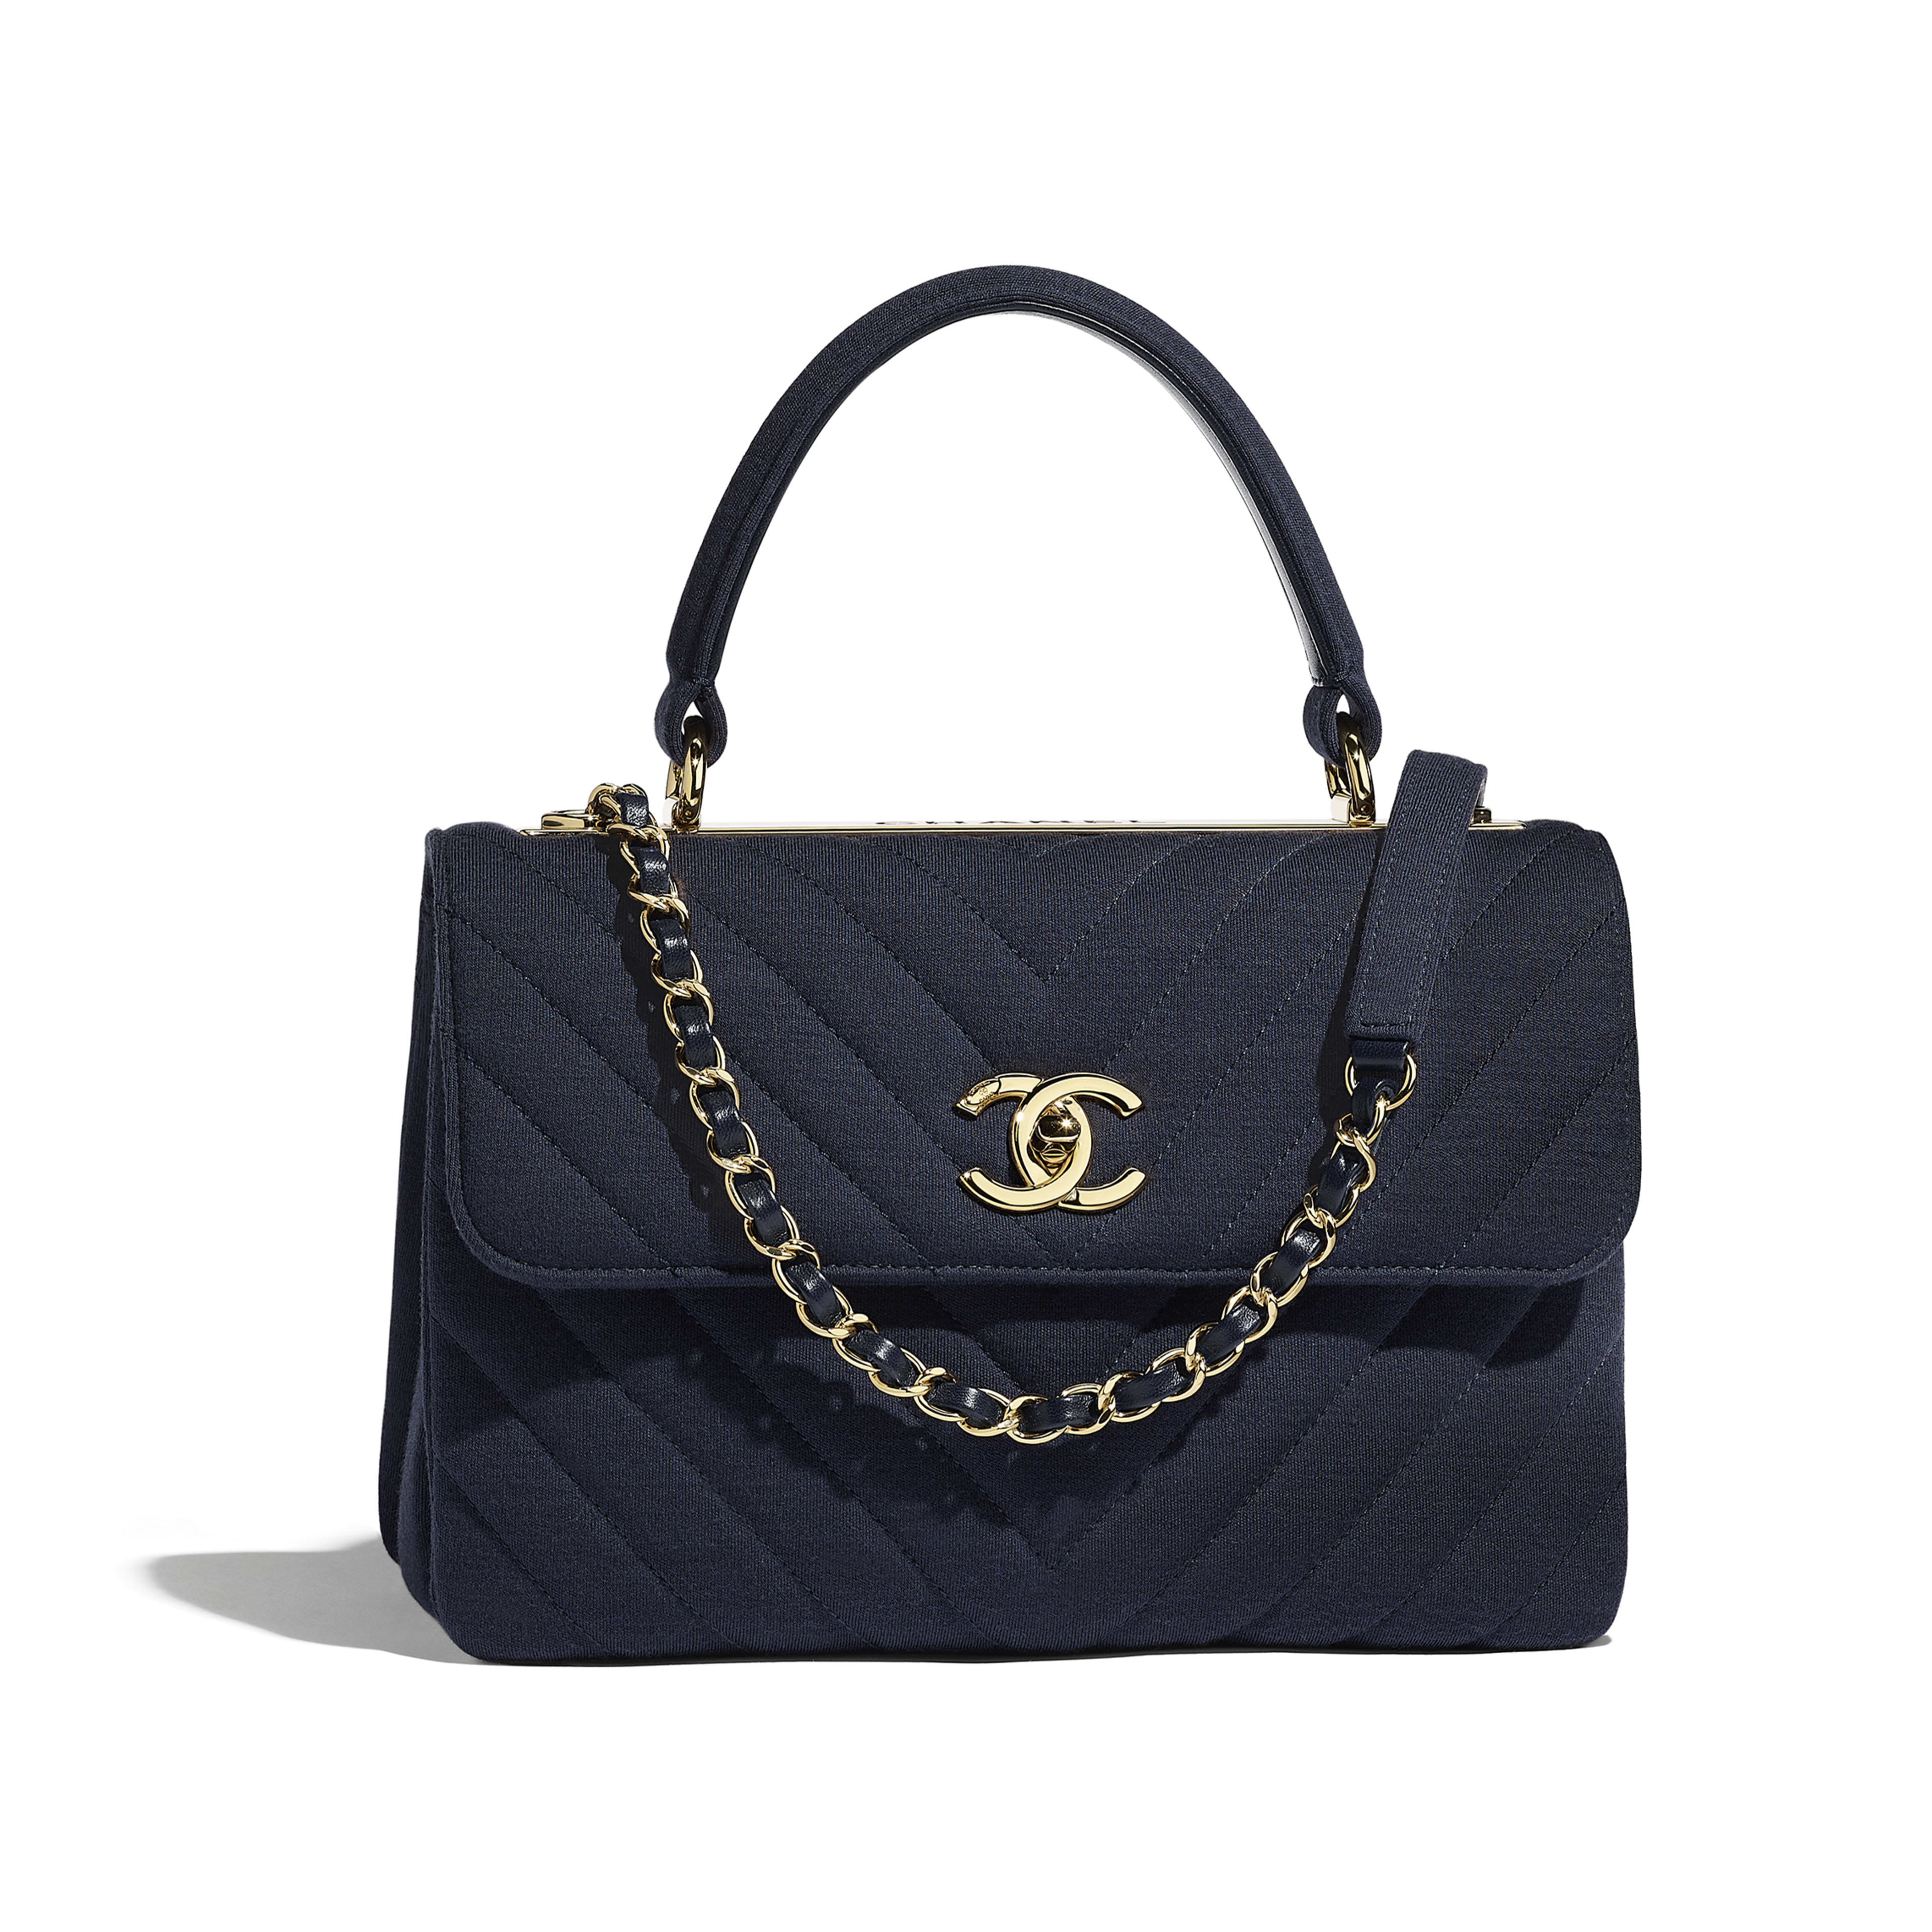 Small Flap Bag with Top Handle - Navy Blue - Jersey & Gold-Tone Metal - Default view - see full sized version